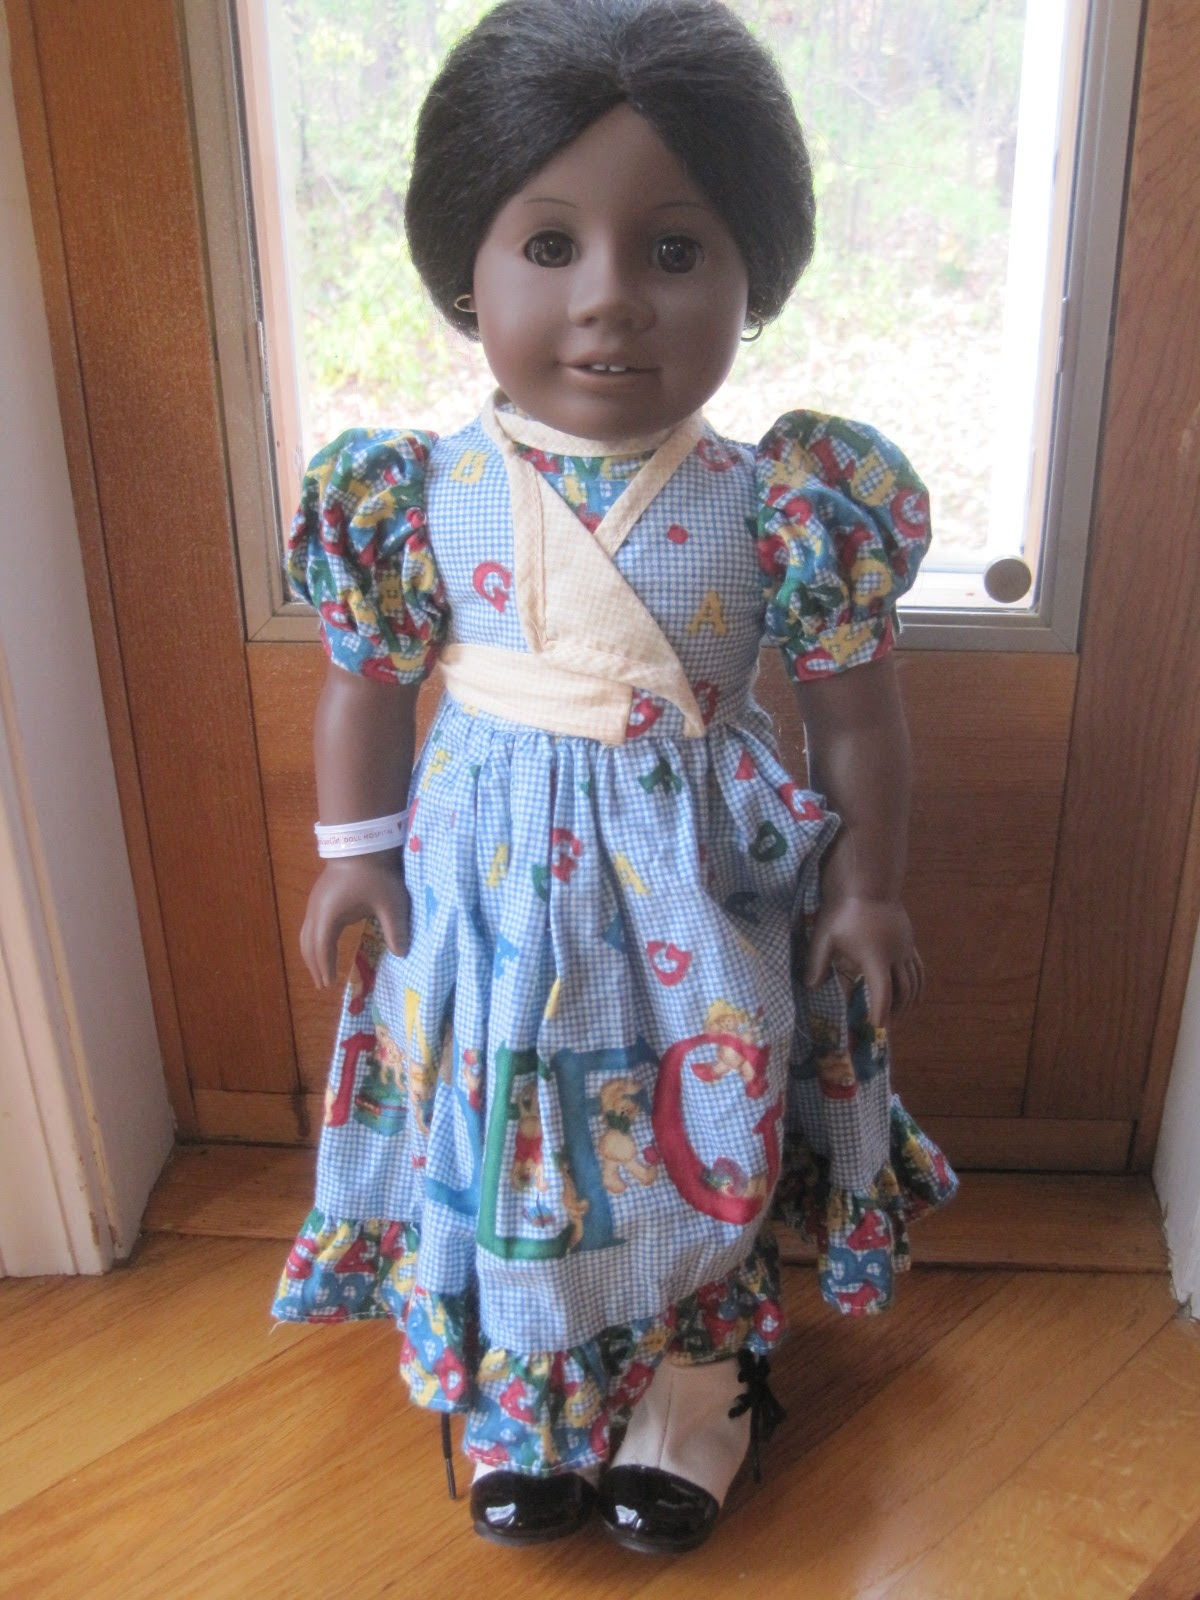 American Girl Dolls Forever!: Our American Girl Doll Halloween Costumes!!